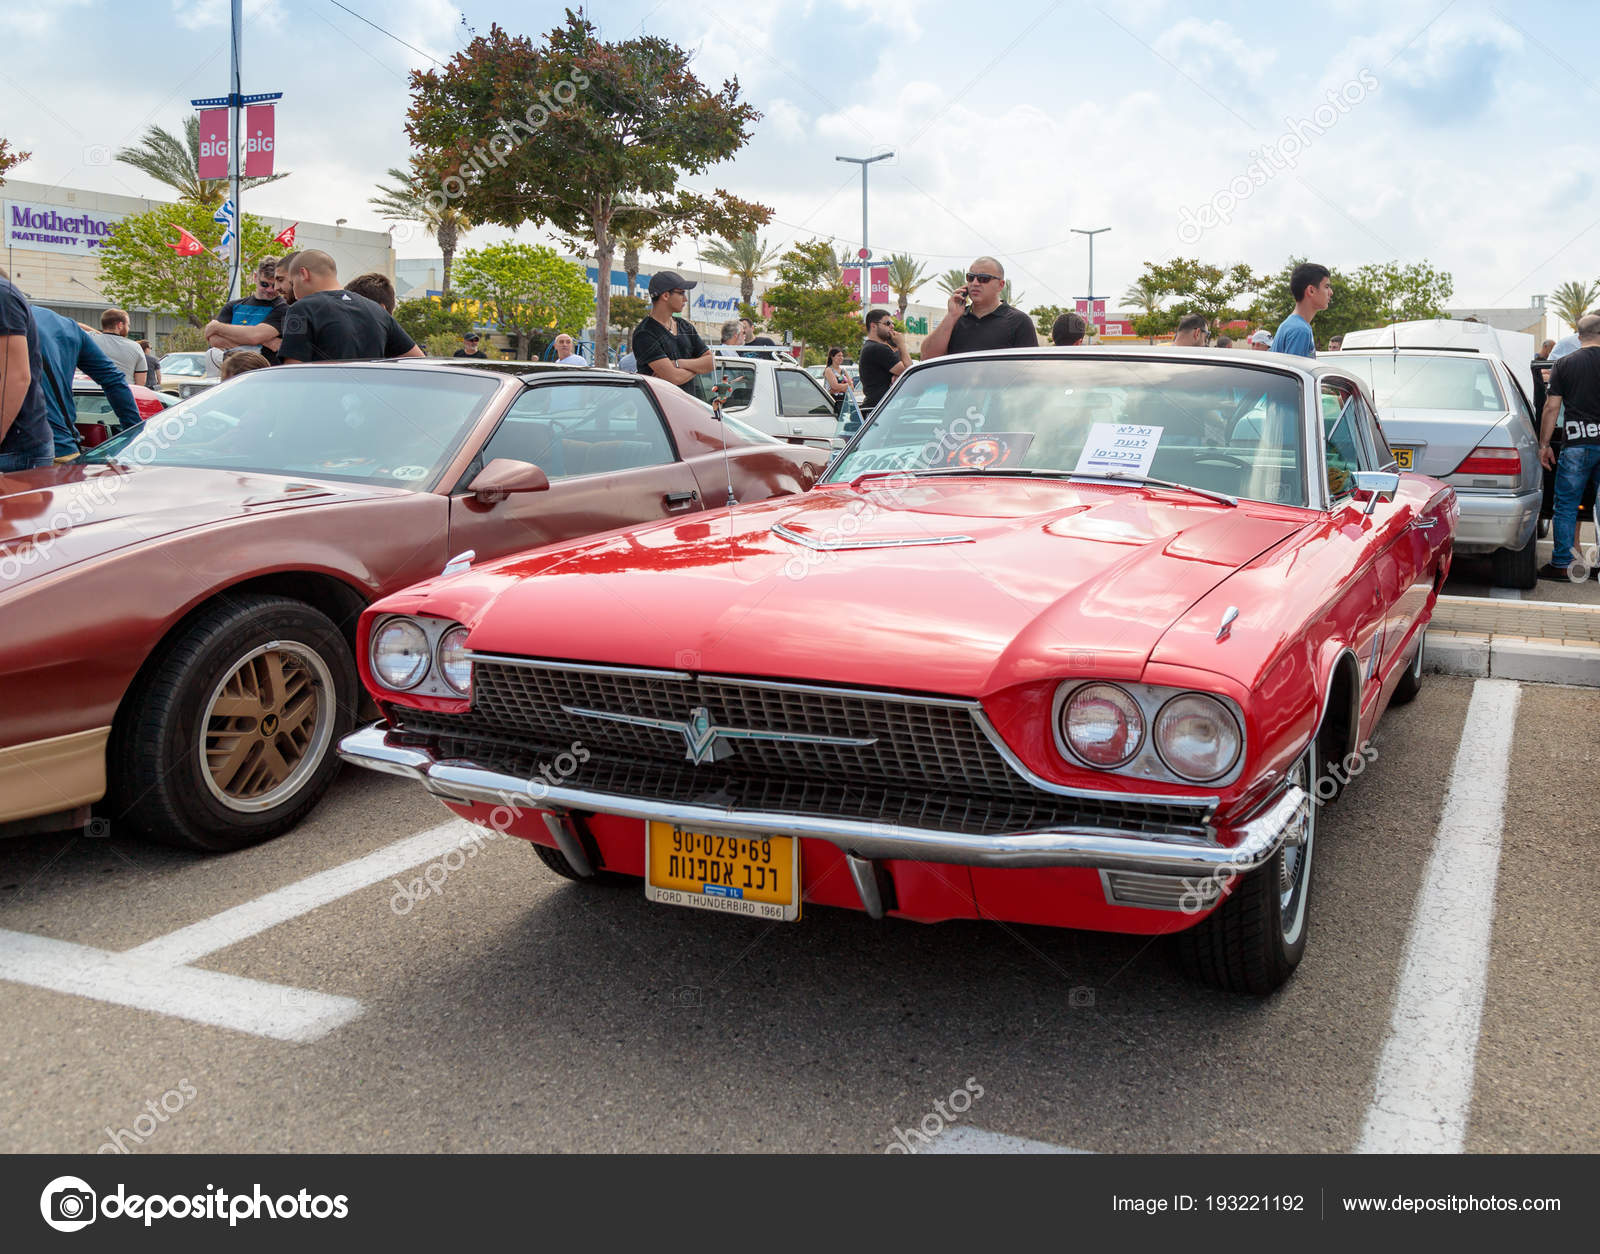 Old Ford Thunderbird 1966 at an exhibition of vintage cars